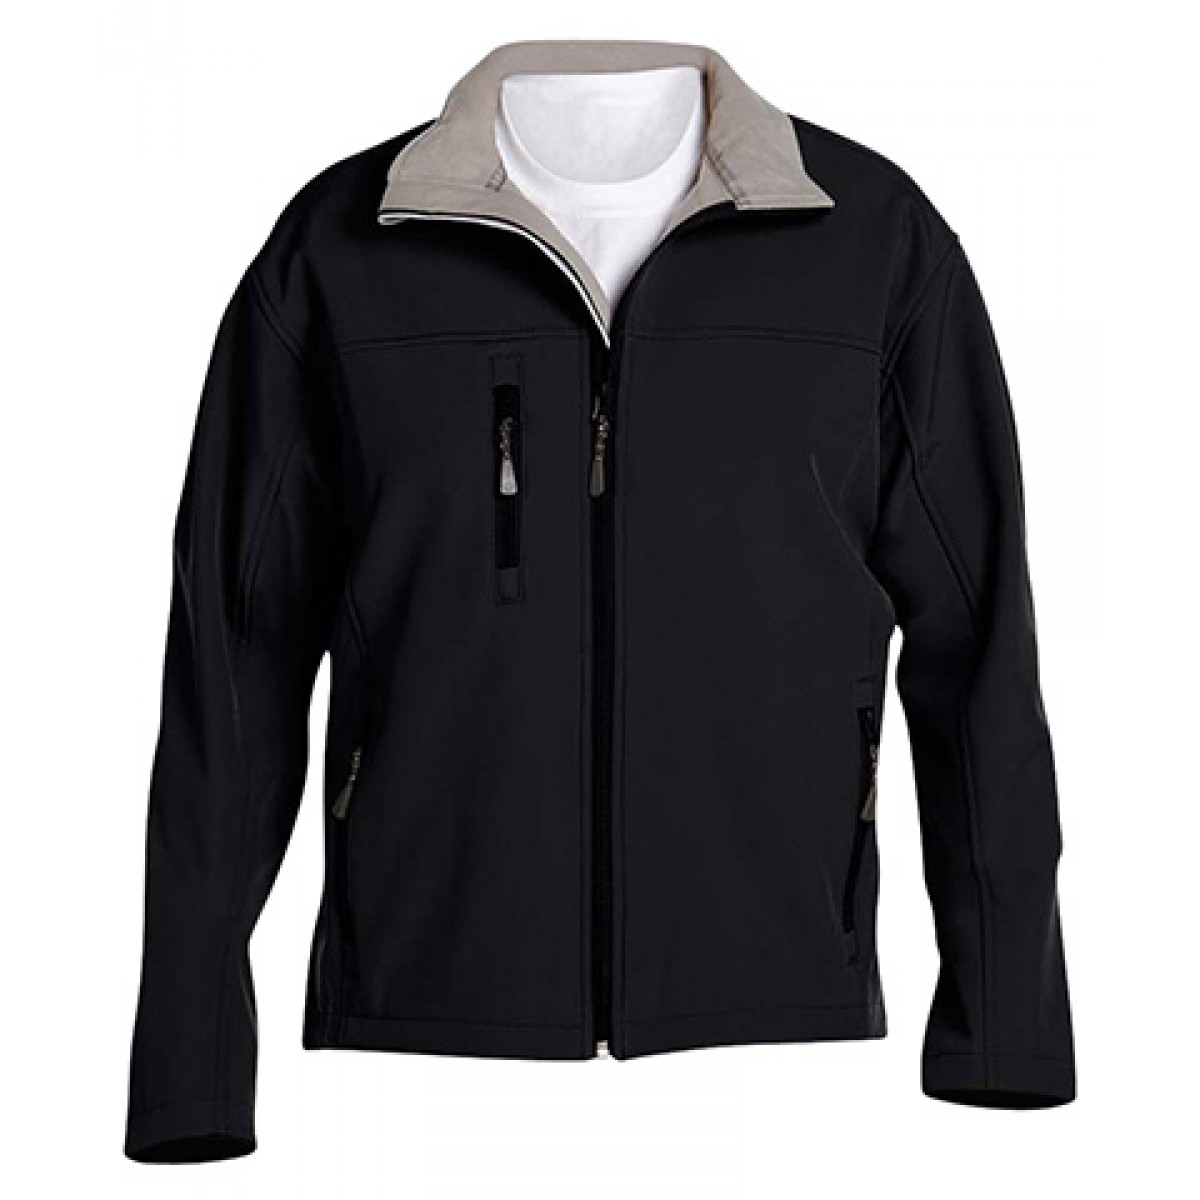 Men's Soft Shell Jacket-Black-M